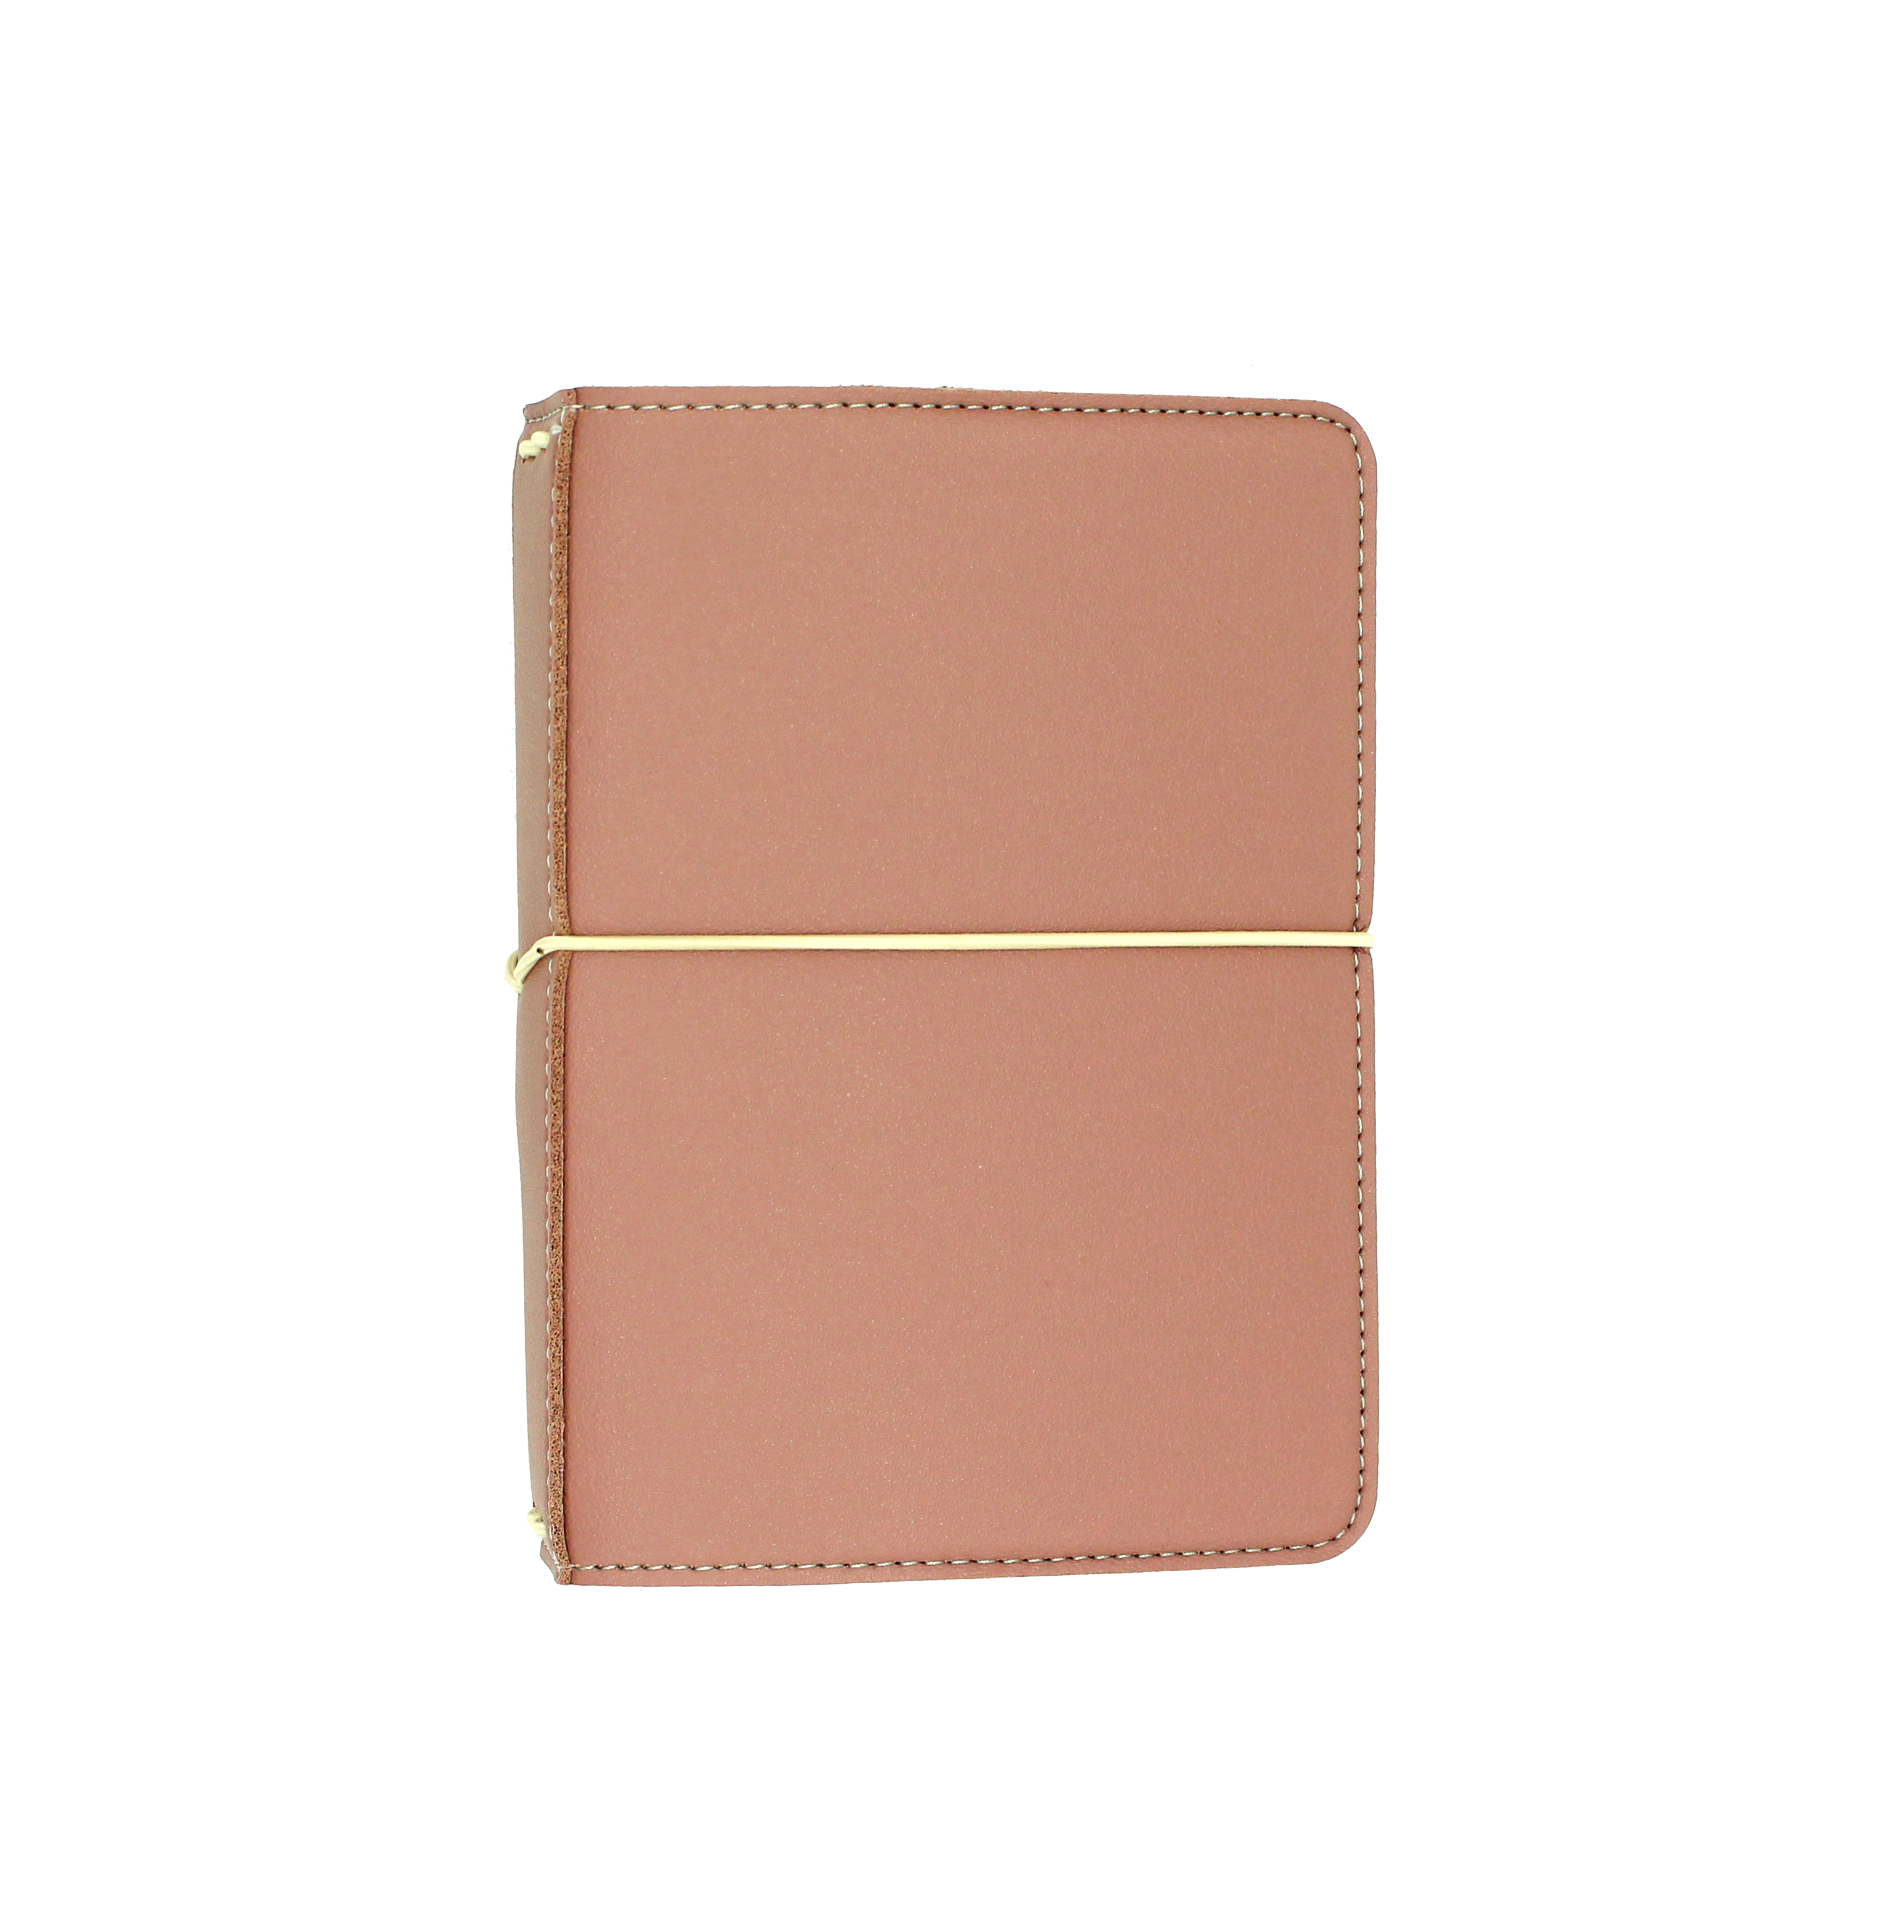 Perfect Fit B6 Travelers Notebook - Duchess